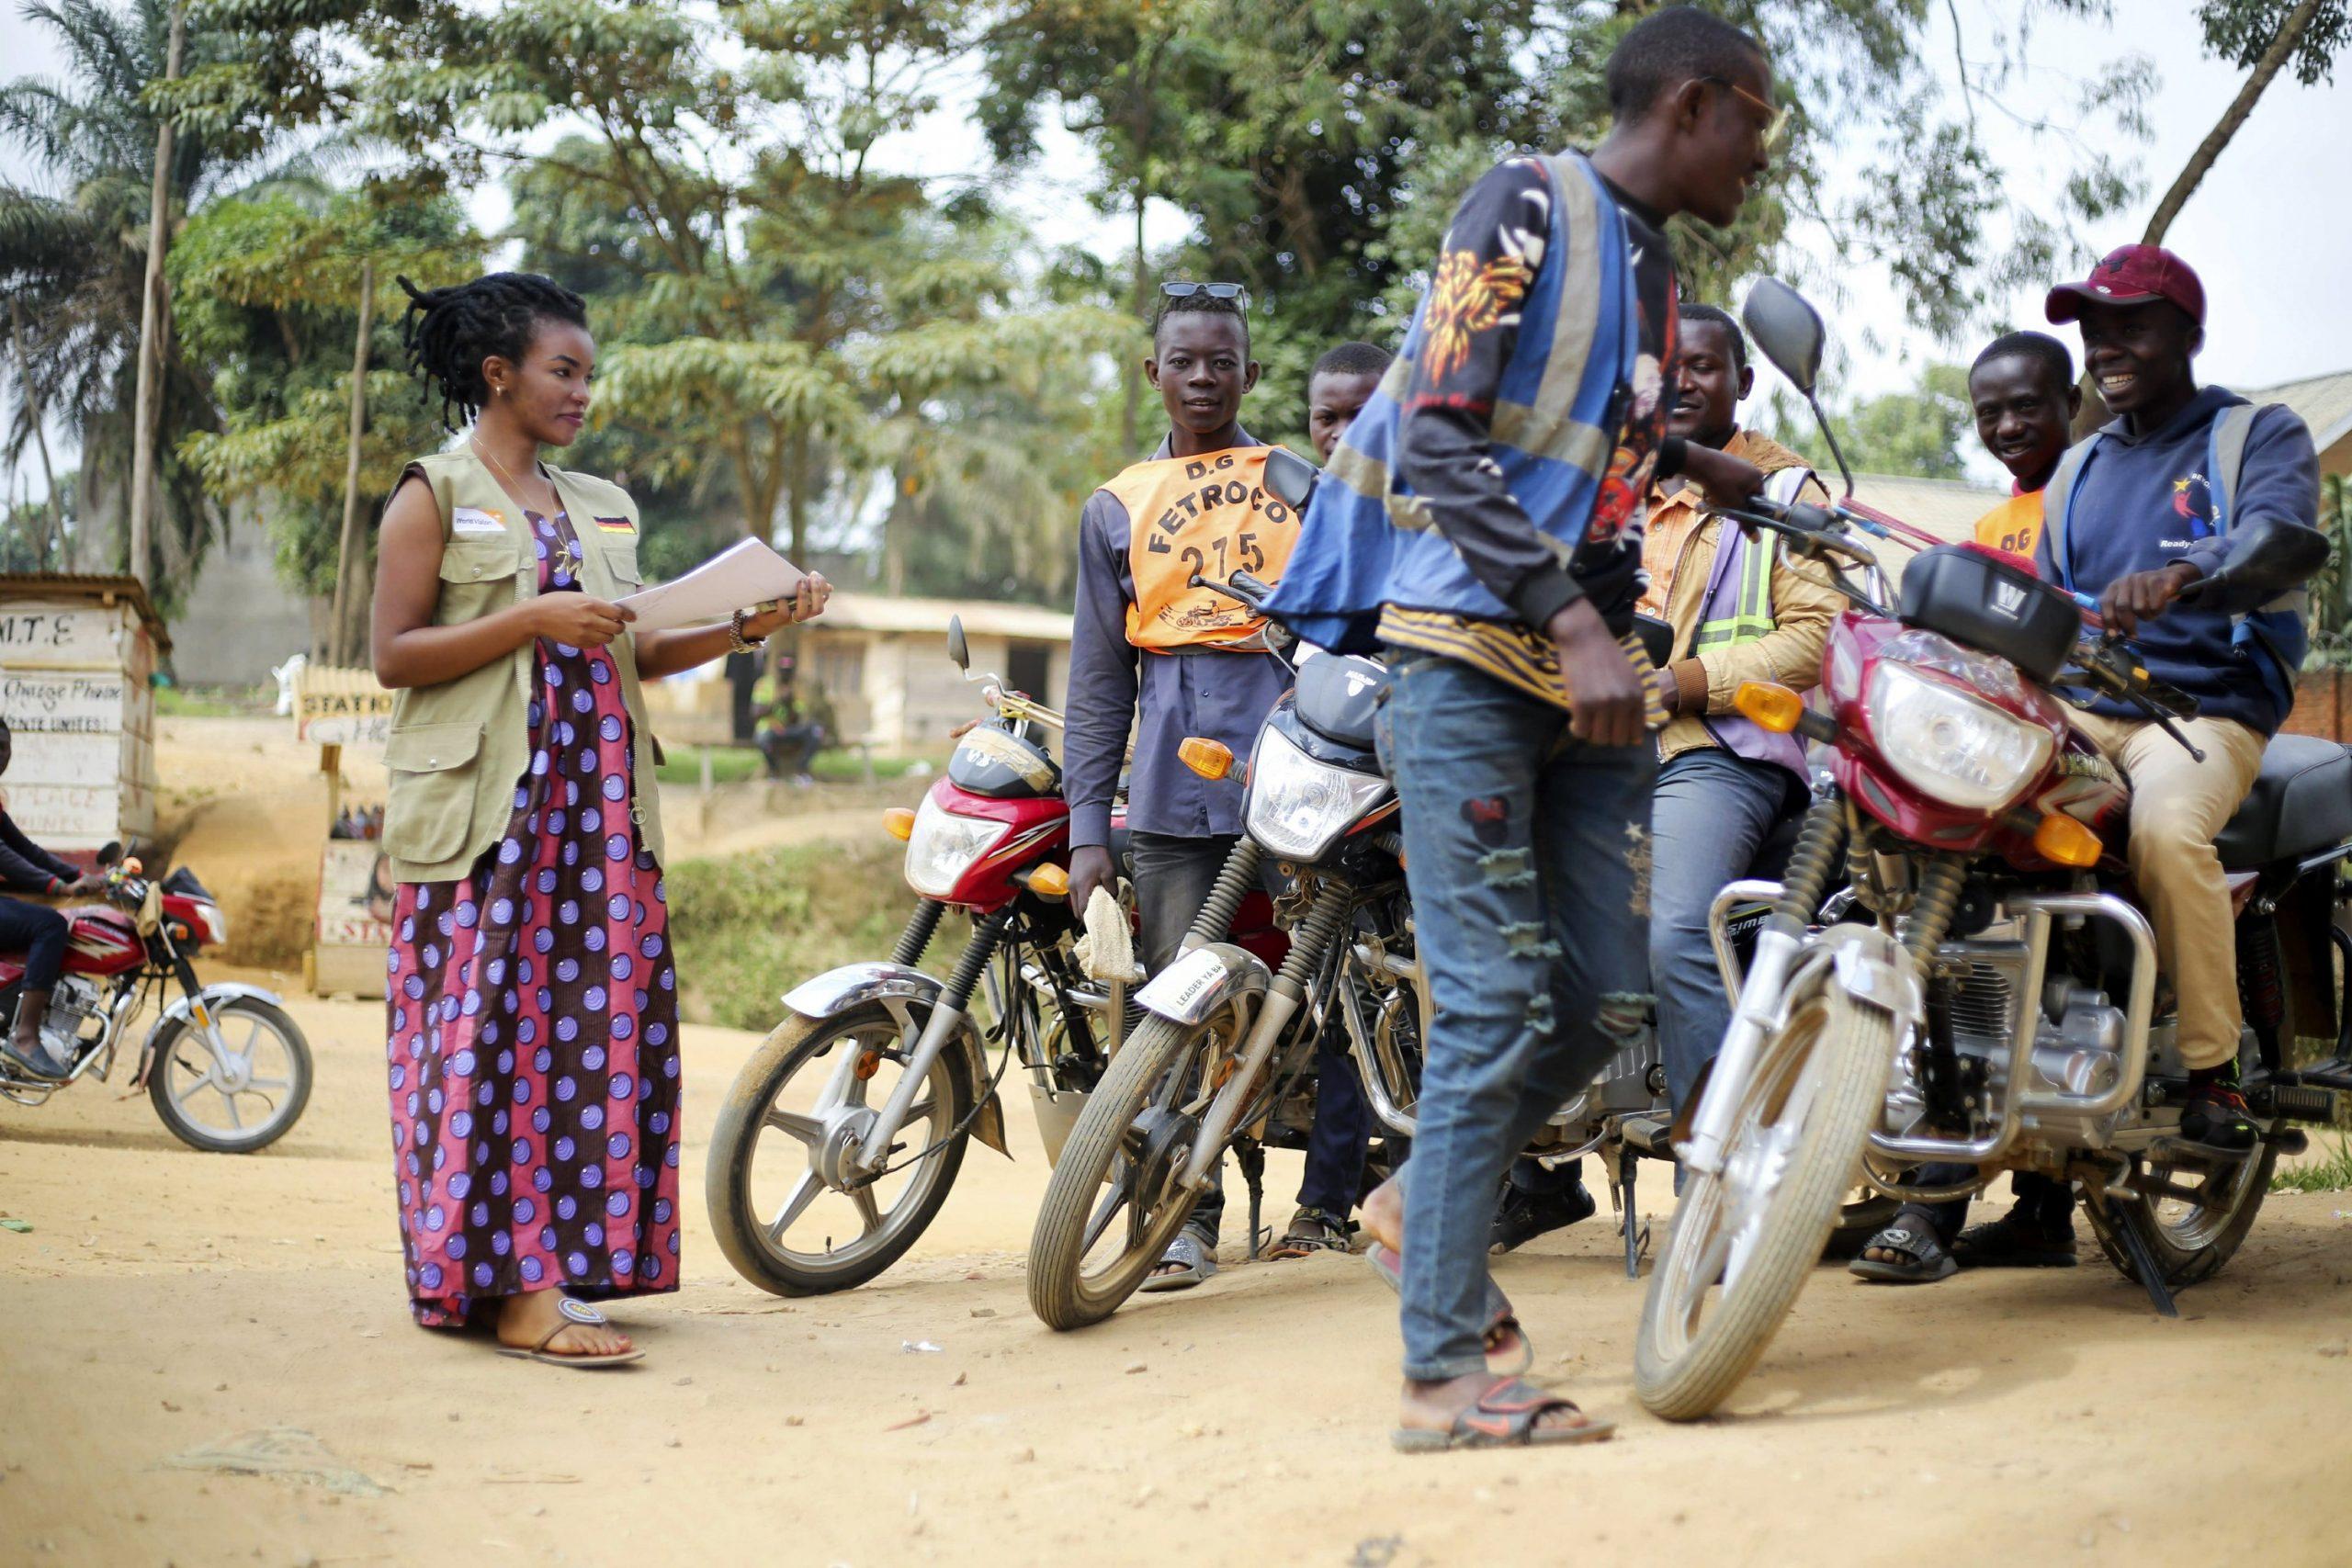 Congo, weary from Ebola, must also battle the coronavirus